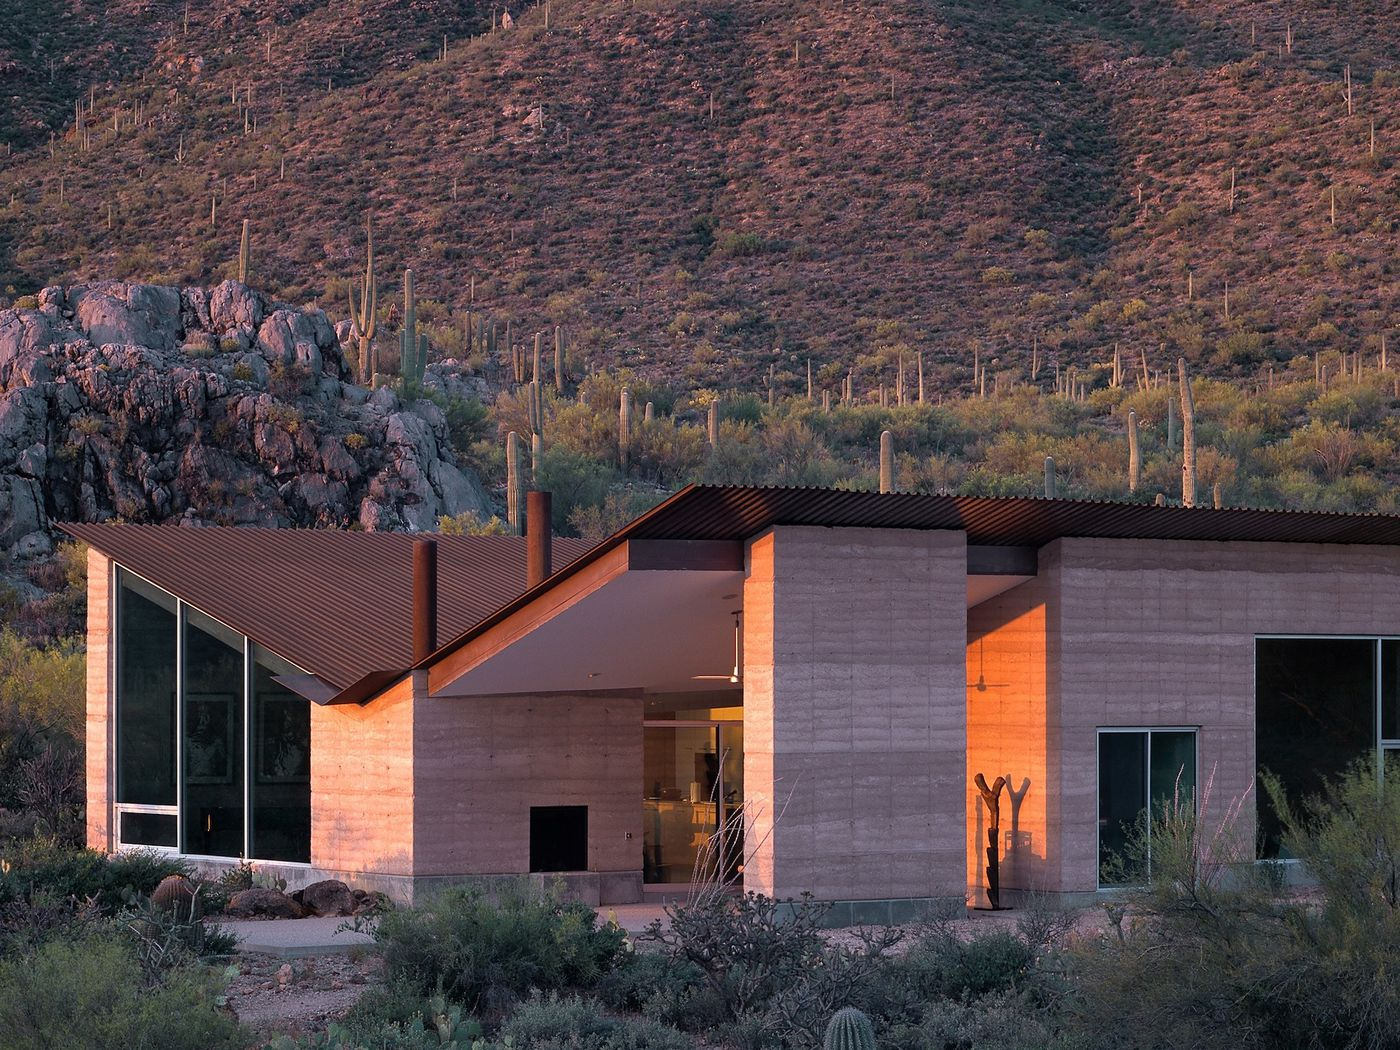 Rammed Earth Architecture A Versatile Green Construction Technique Curbed